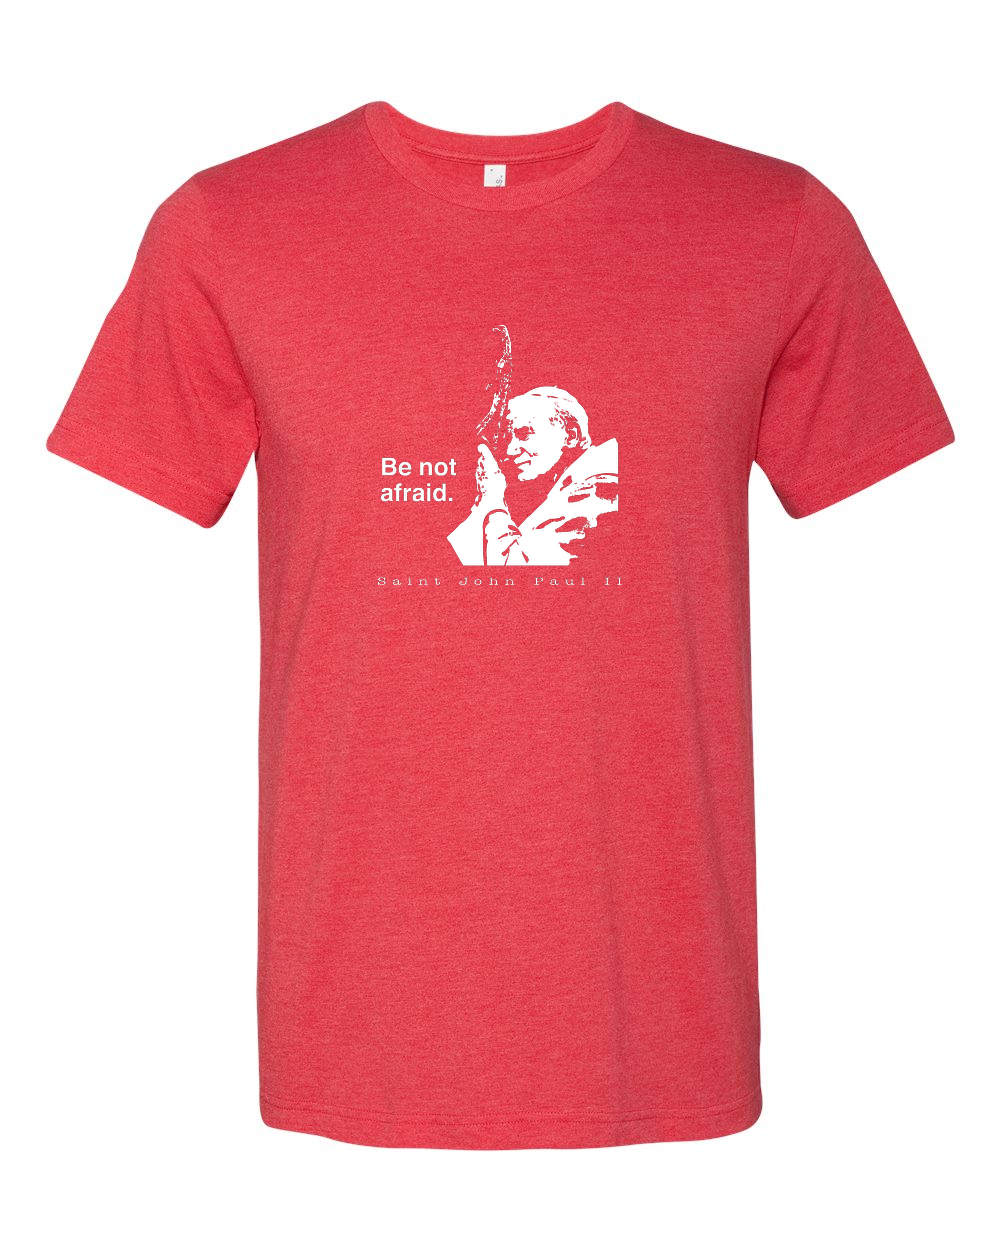 Be Not Afraid - St. John Paul II T Shirt - That One Sheep